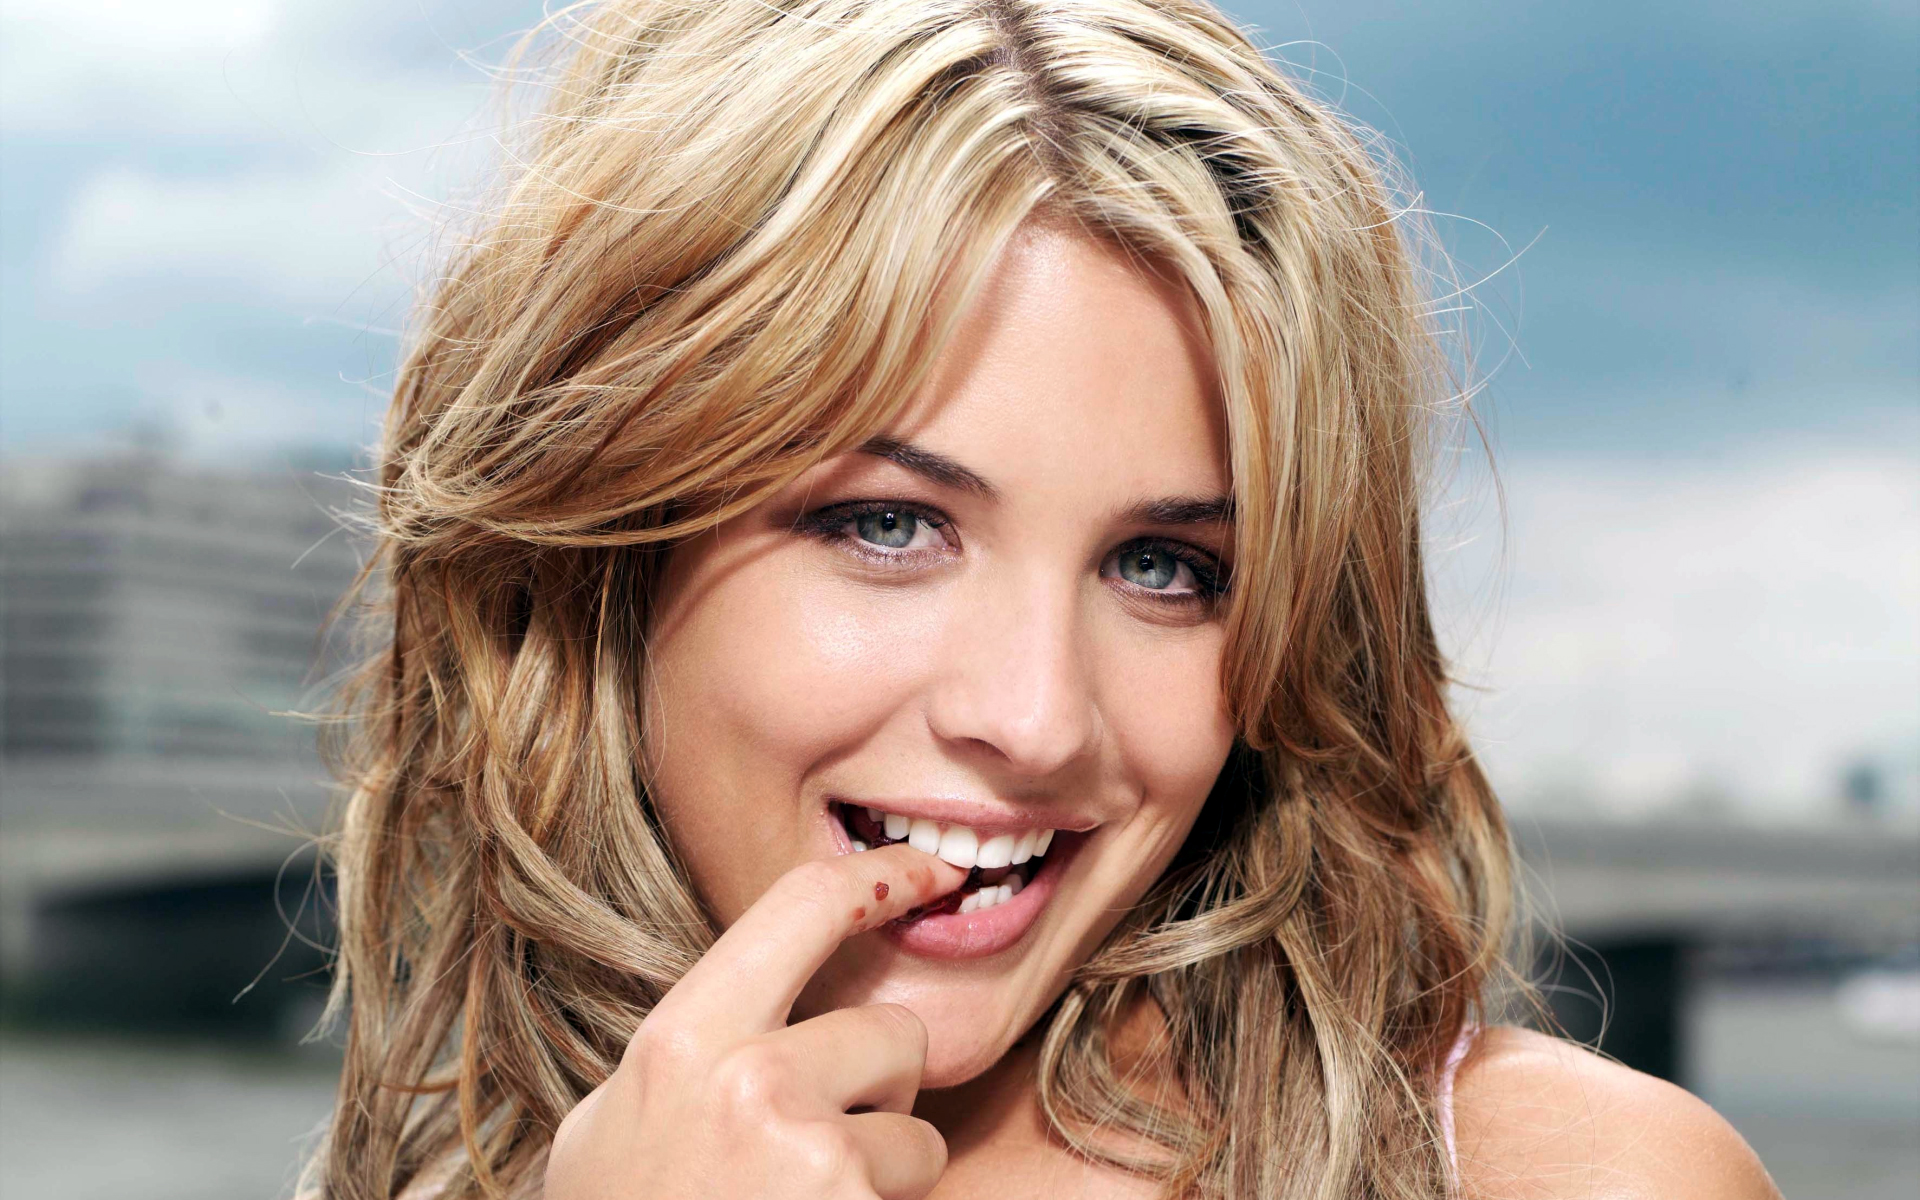 ICloud Gemma Atkinson nude (84 foto and video), Topless, Leaked, Boobs, swimsuit 2015